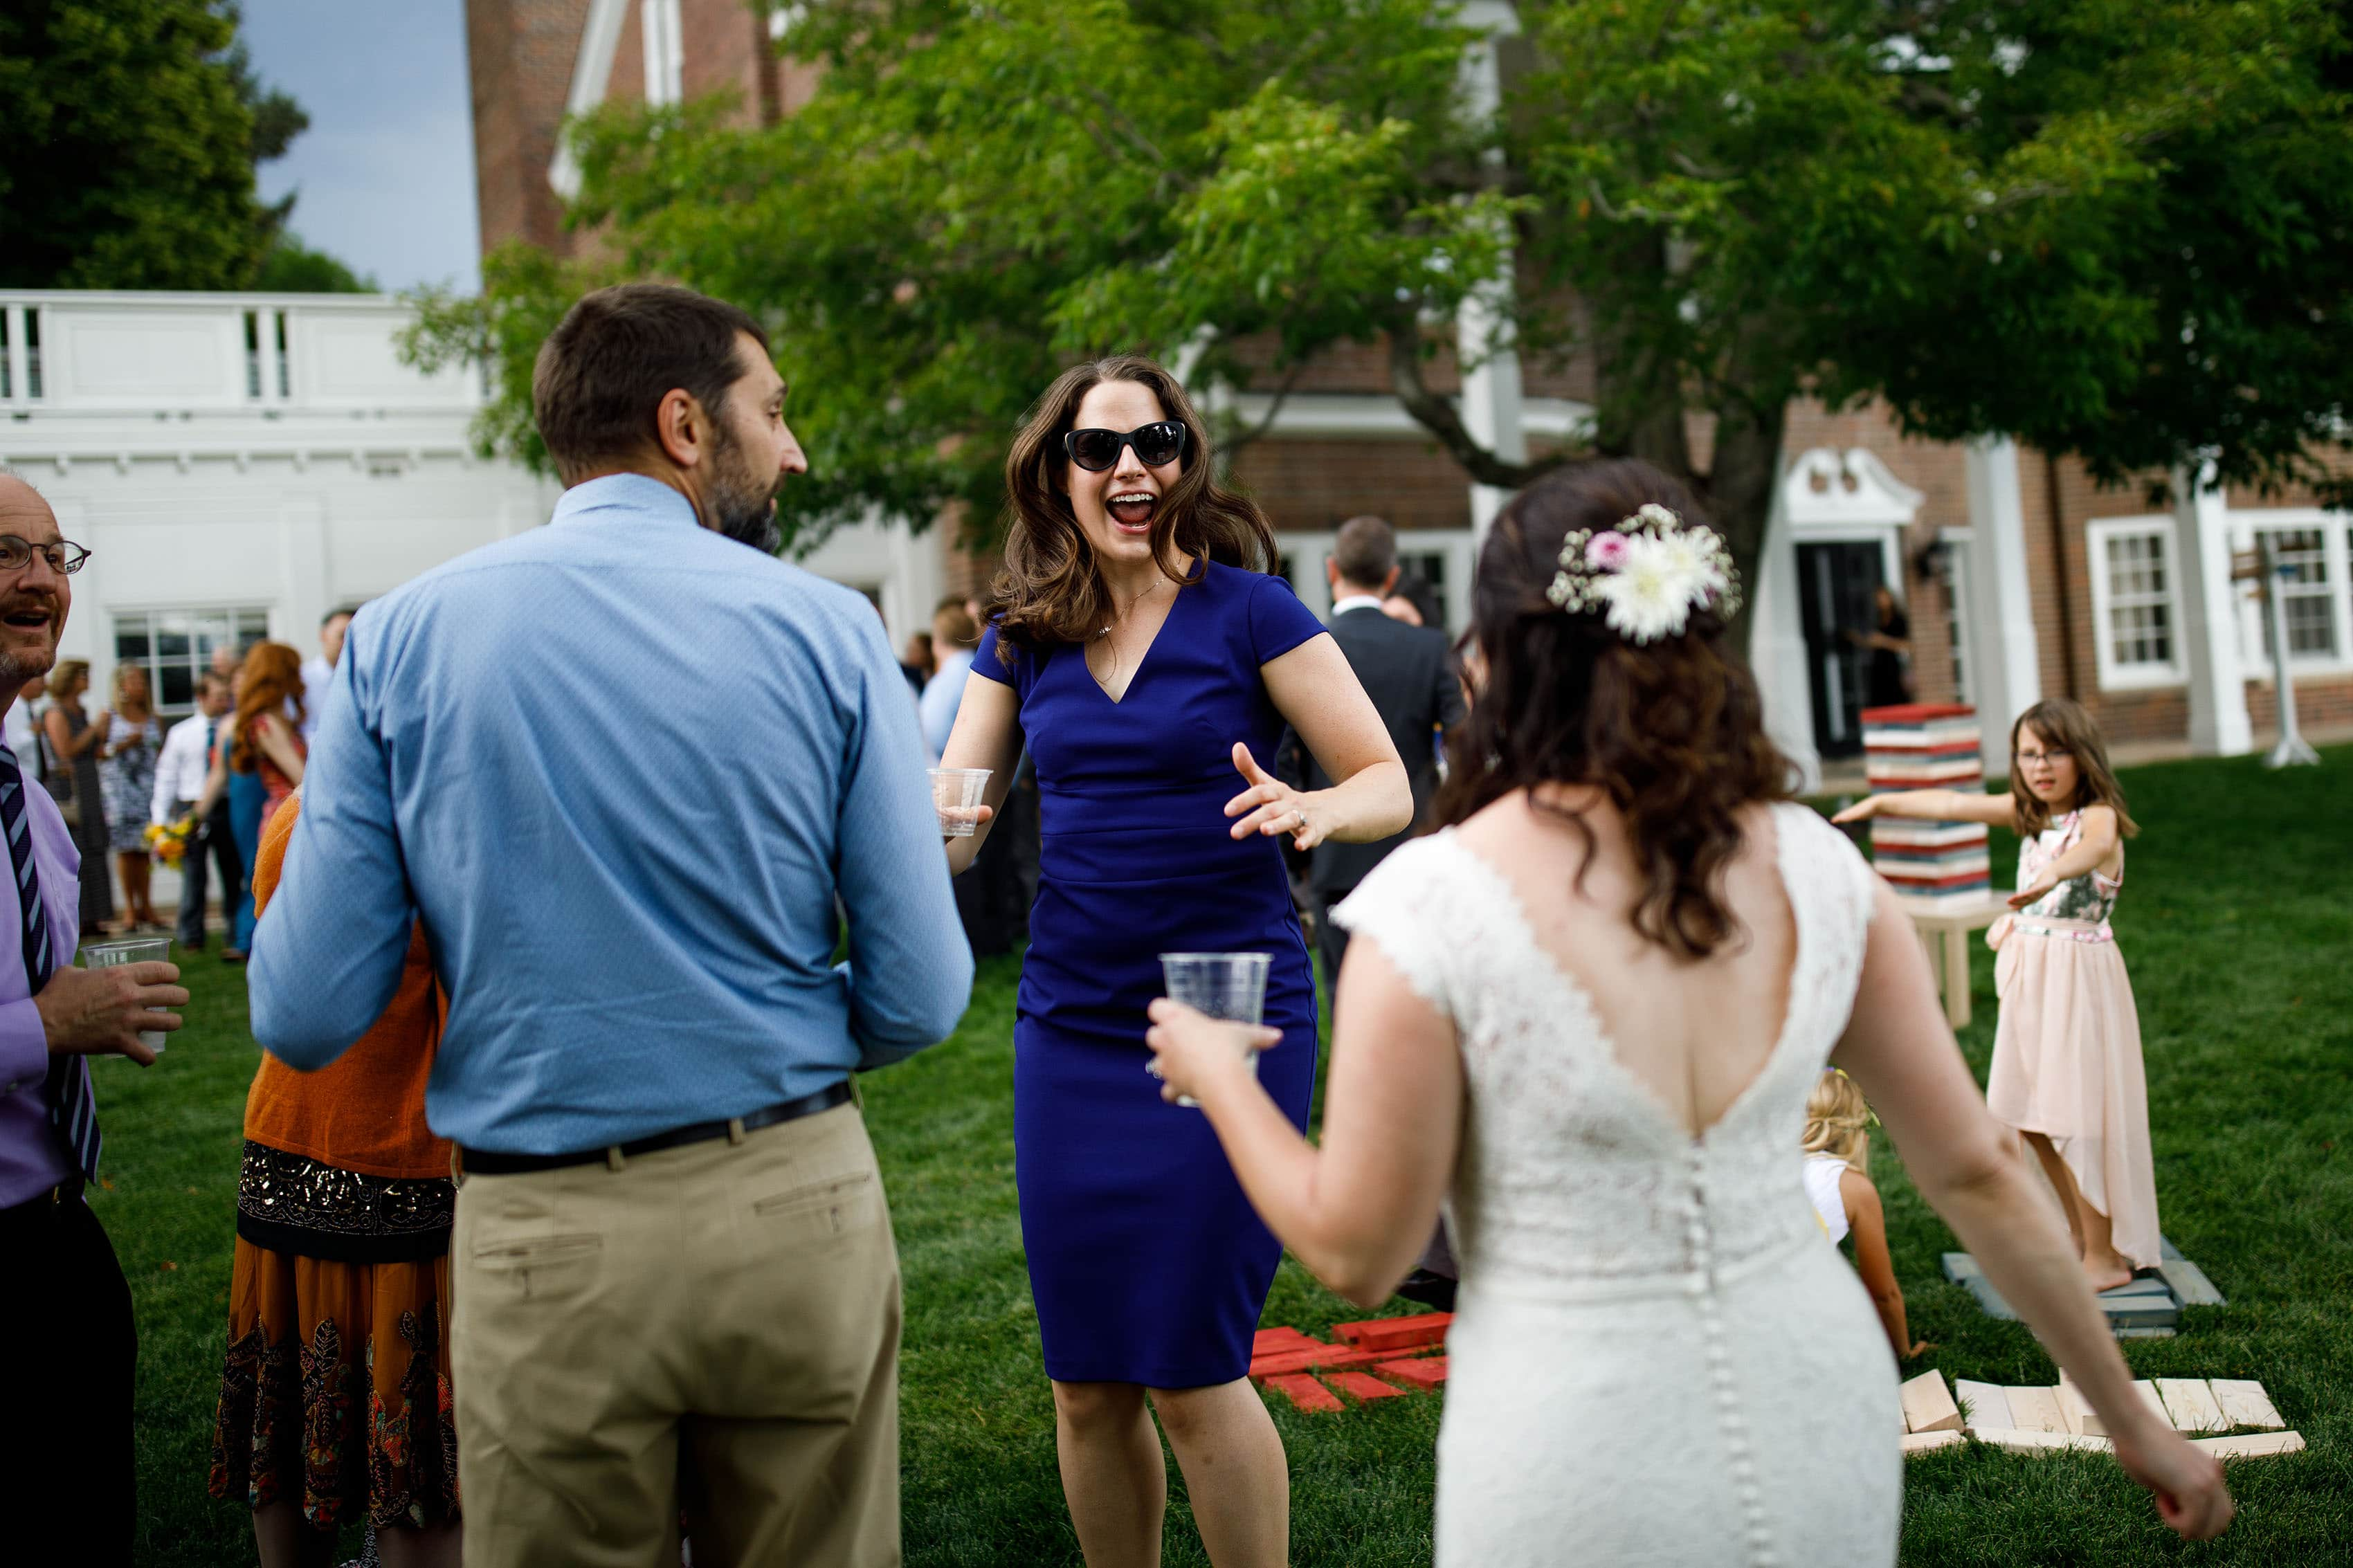 Guests react during a wedding reception at the Buell Mansion